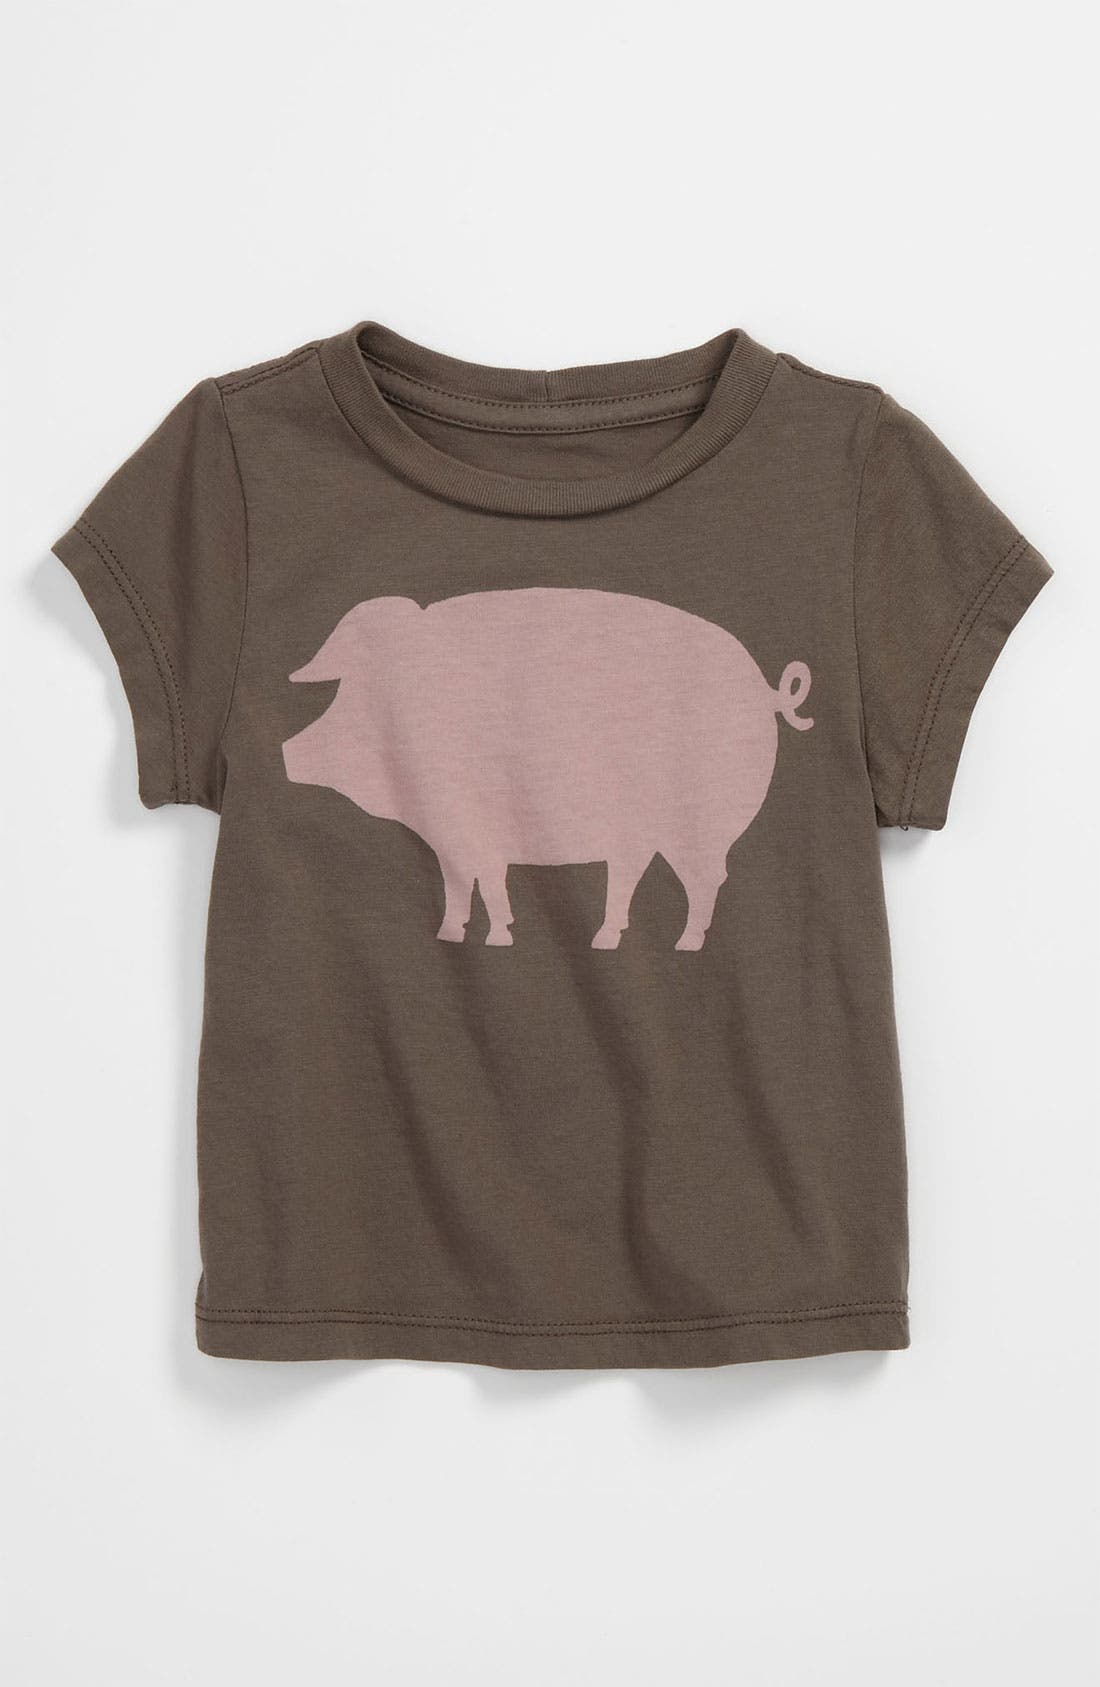 Alternate Image 1 Selected - Peek 'Oink' T-Shirt (Baby)